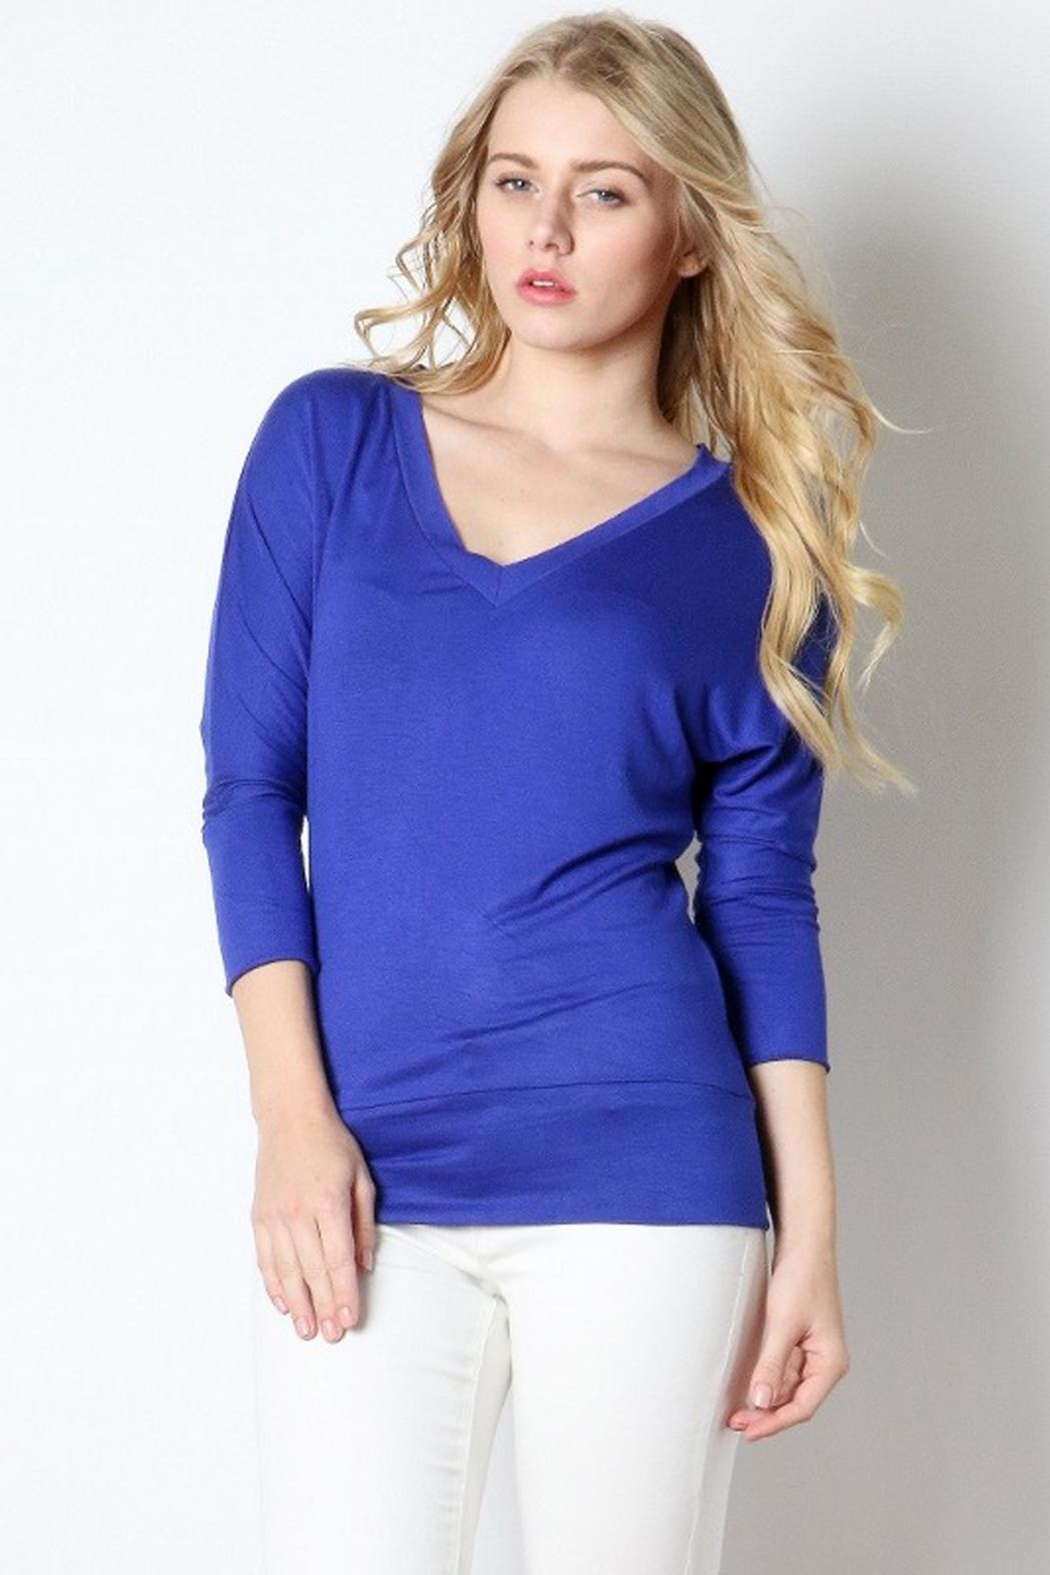 Zenana Outfitters Vneck Banded Top - Main Image